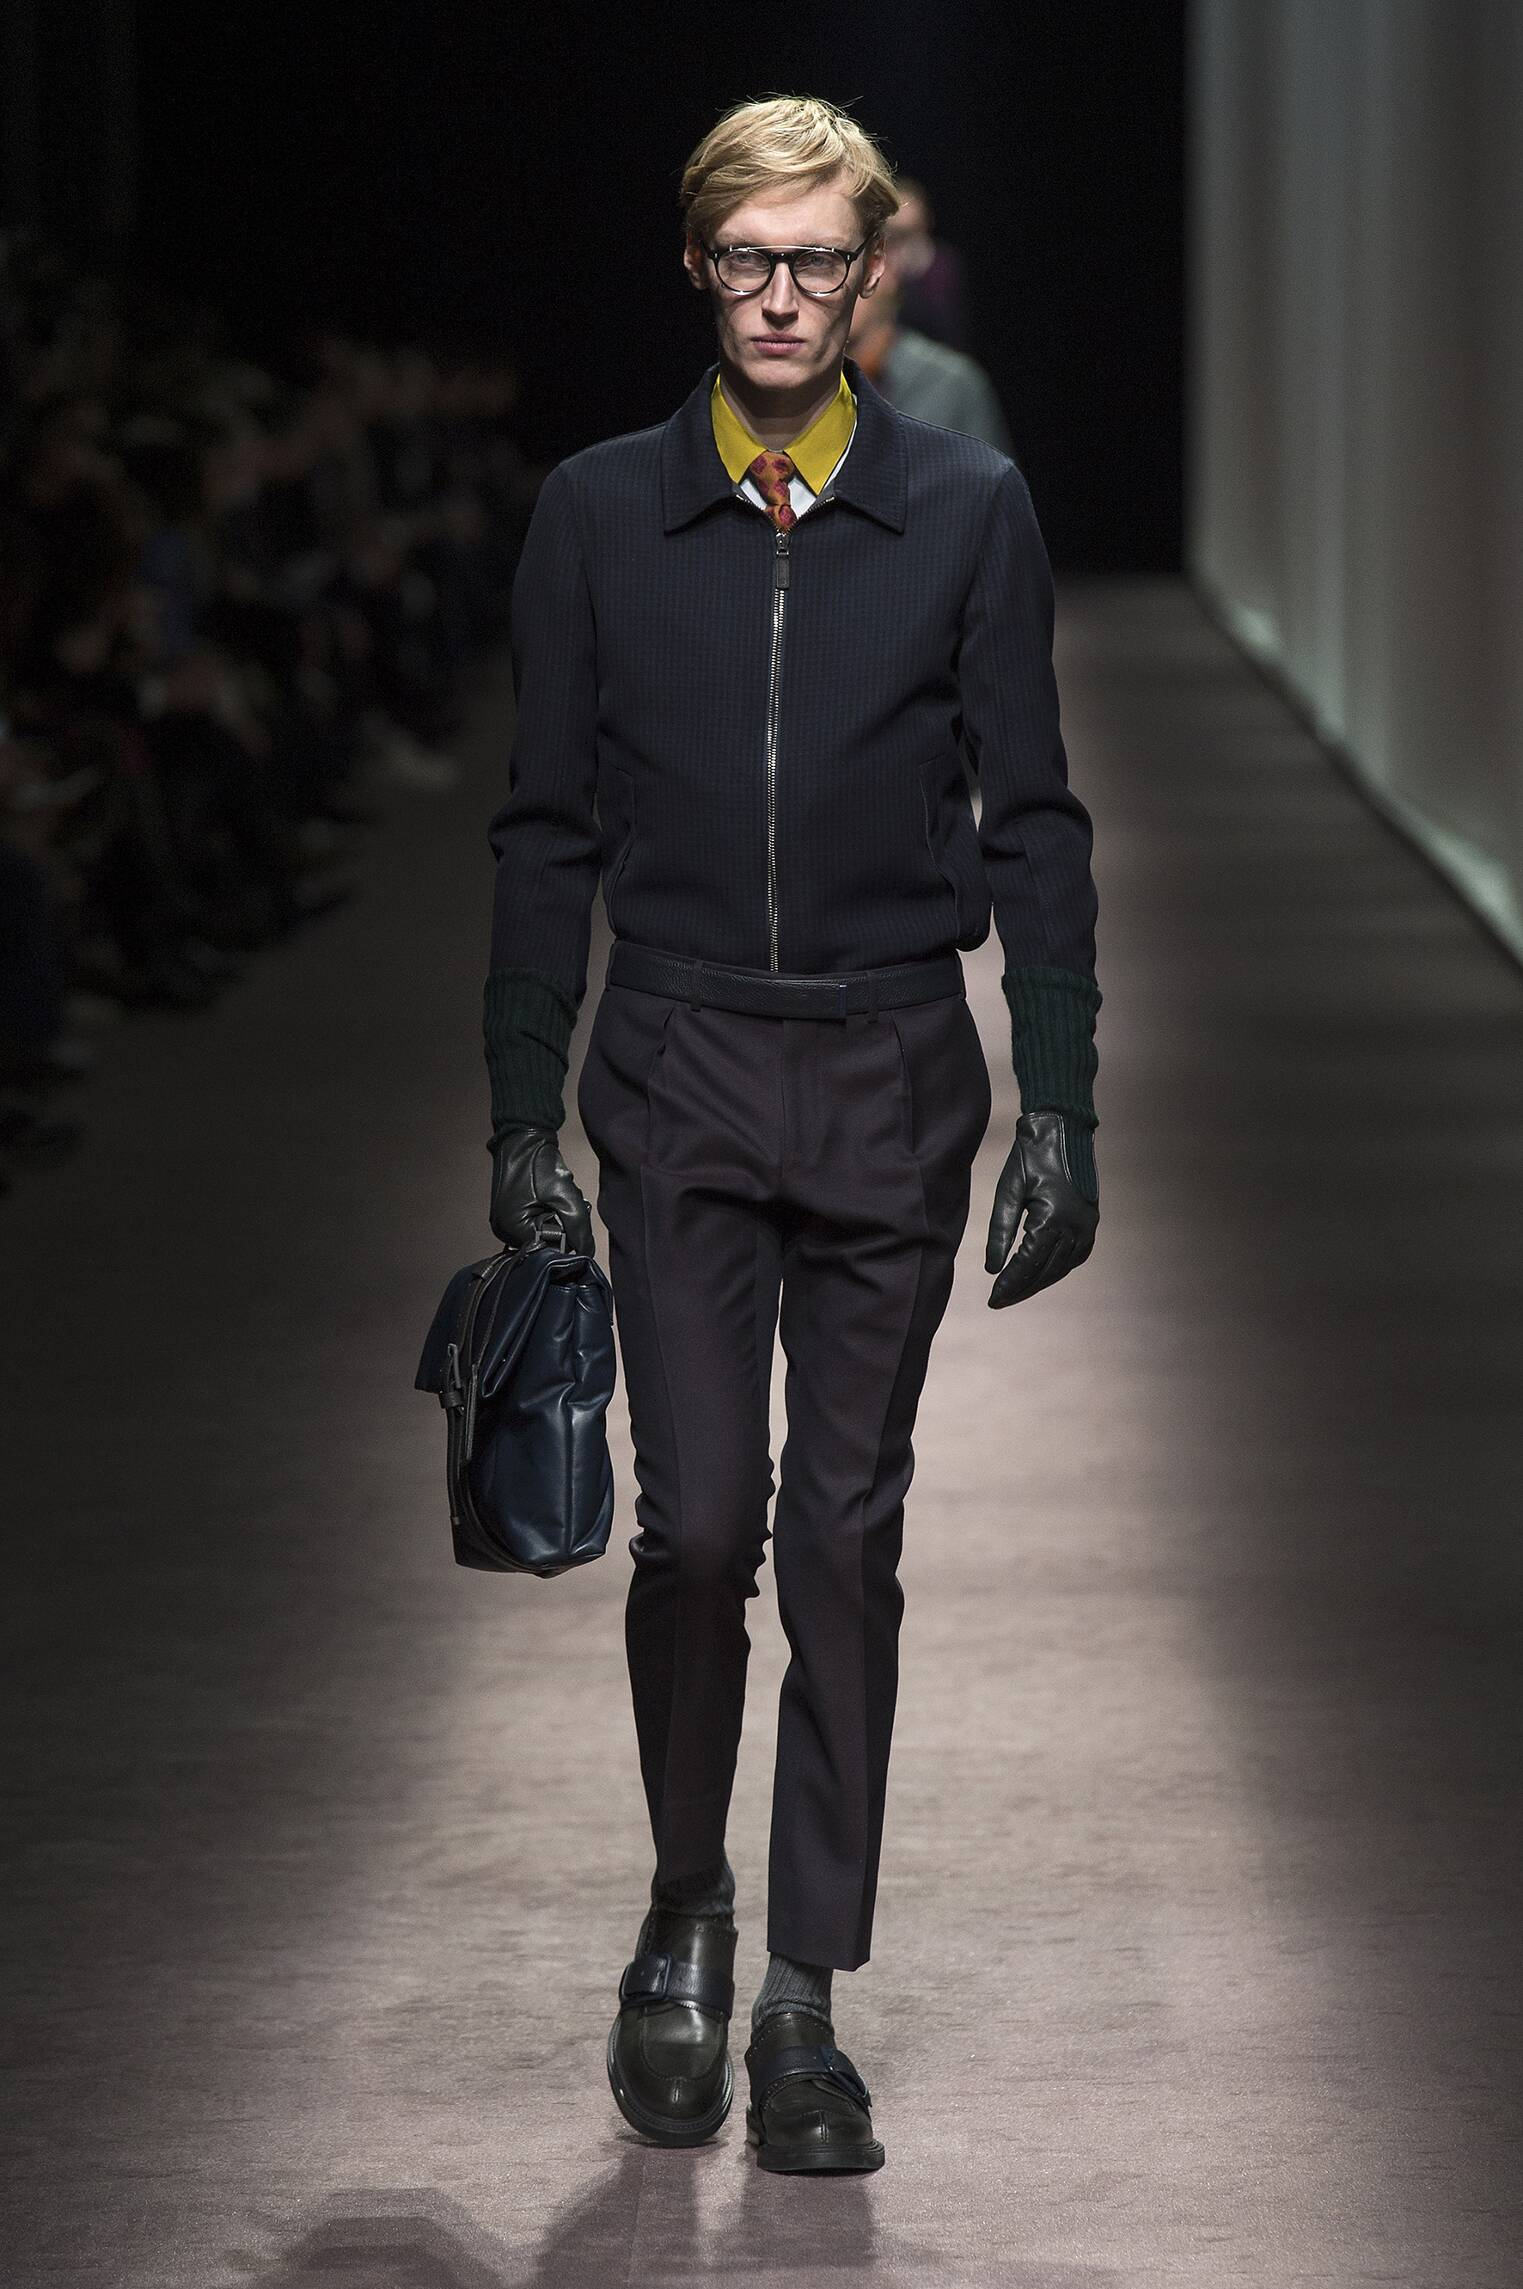 Winter Fashion Trends 2016-17 Canali